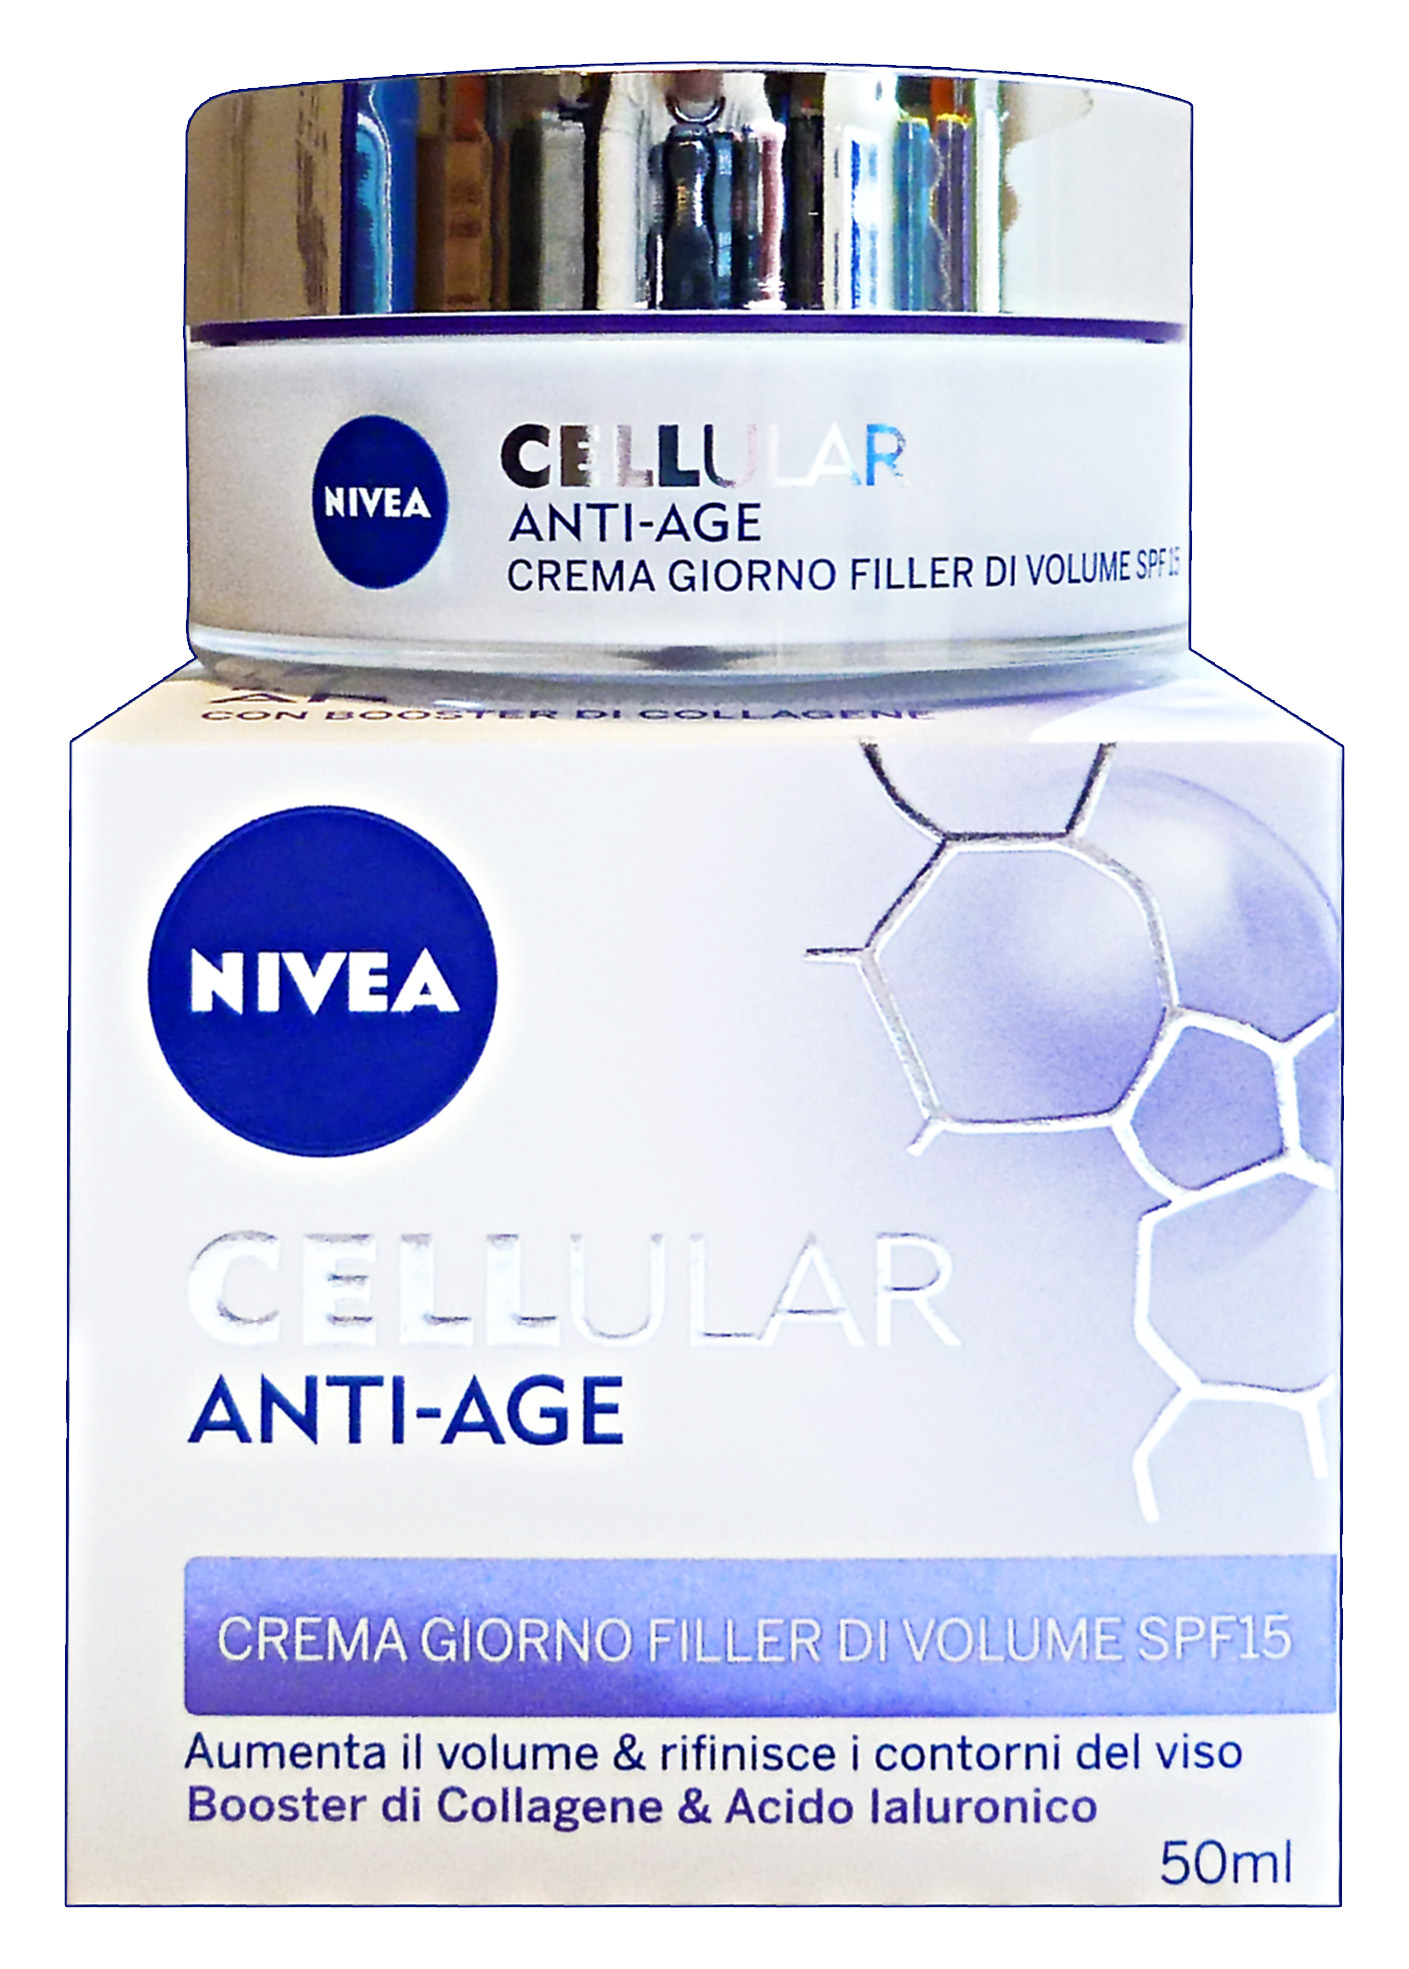 NIVEA Cellular anti-age filler giorno spf15 50 ml.